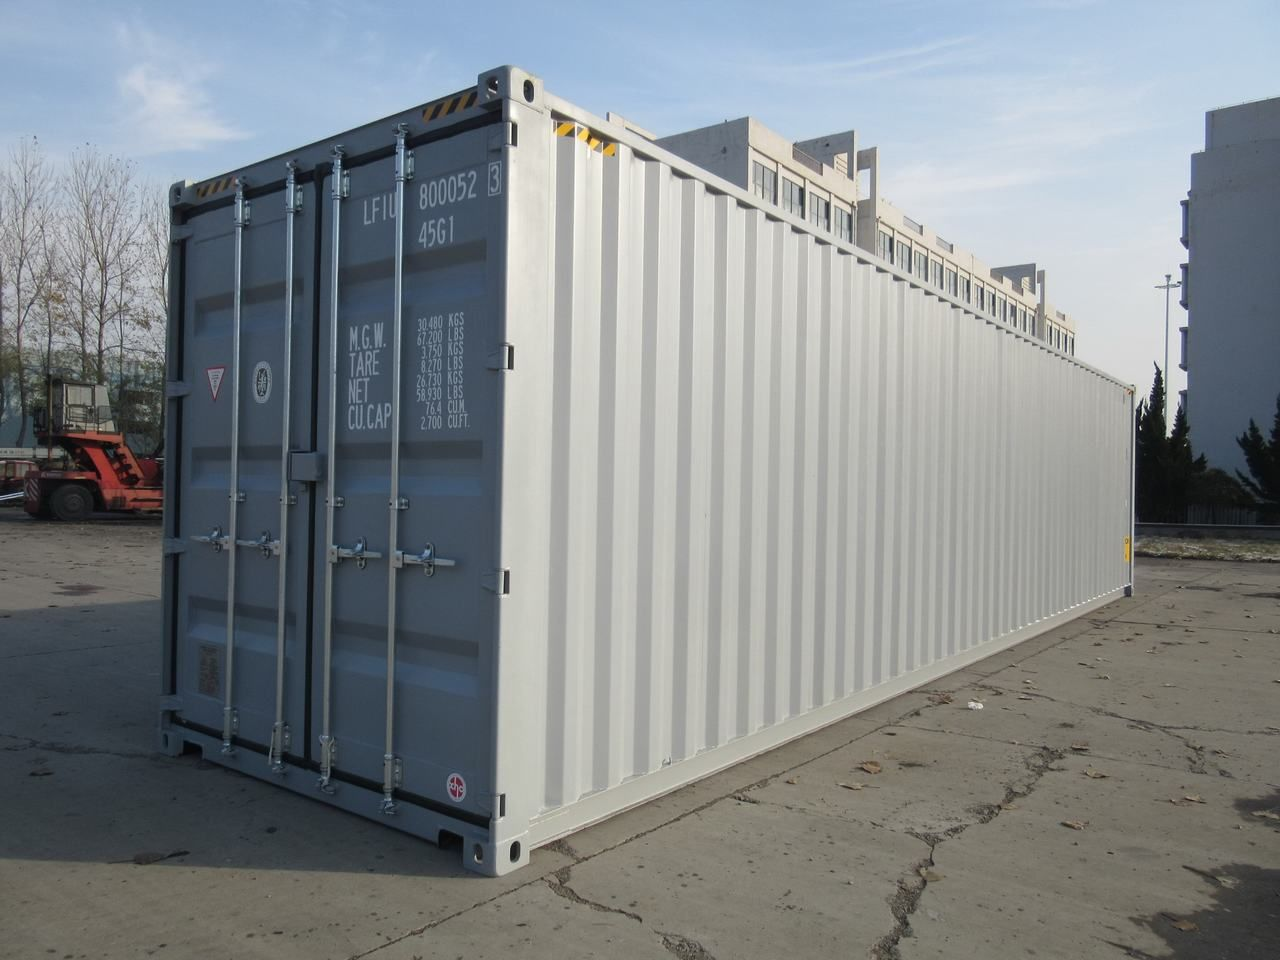 J And J Container Services Shipping Containers For Sale Texas Shipping Containers For Sale Containers For Sale Shipping Container